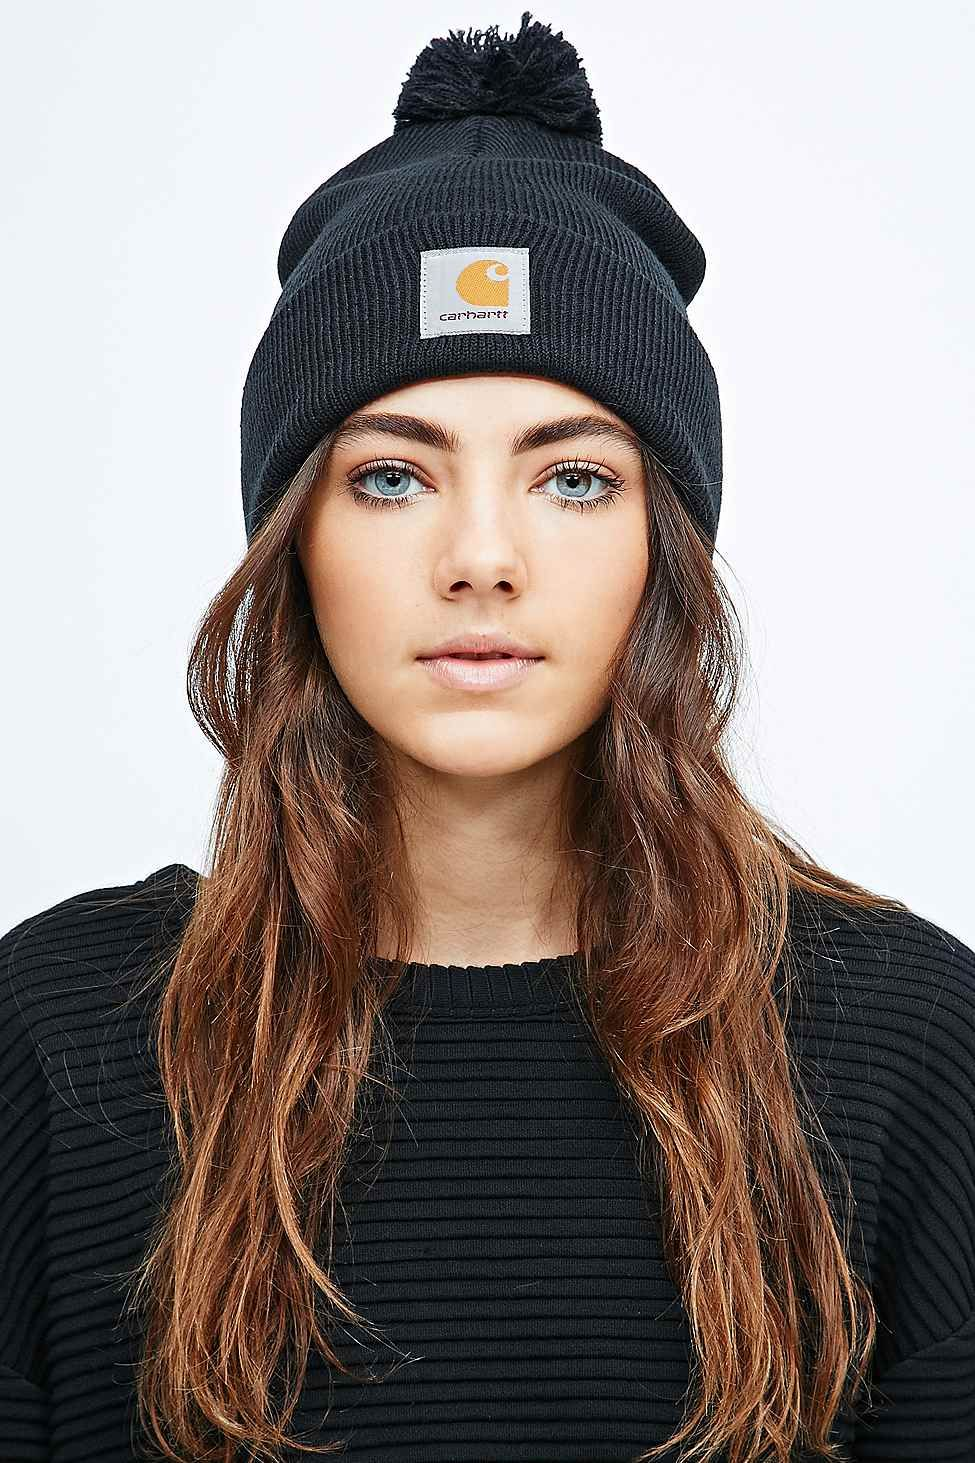 0b5e9702e5796 Carhartt Bobble Watch Hat Beanie in Black - Urban Outfitters